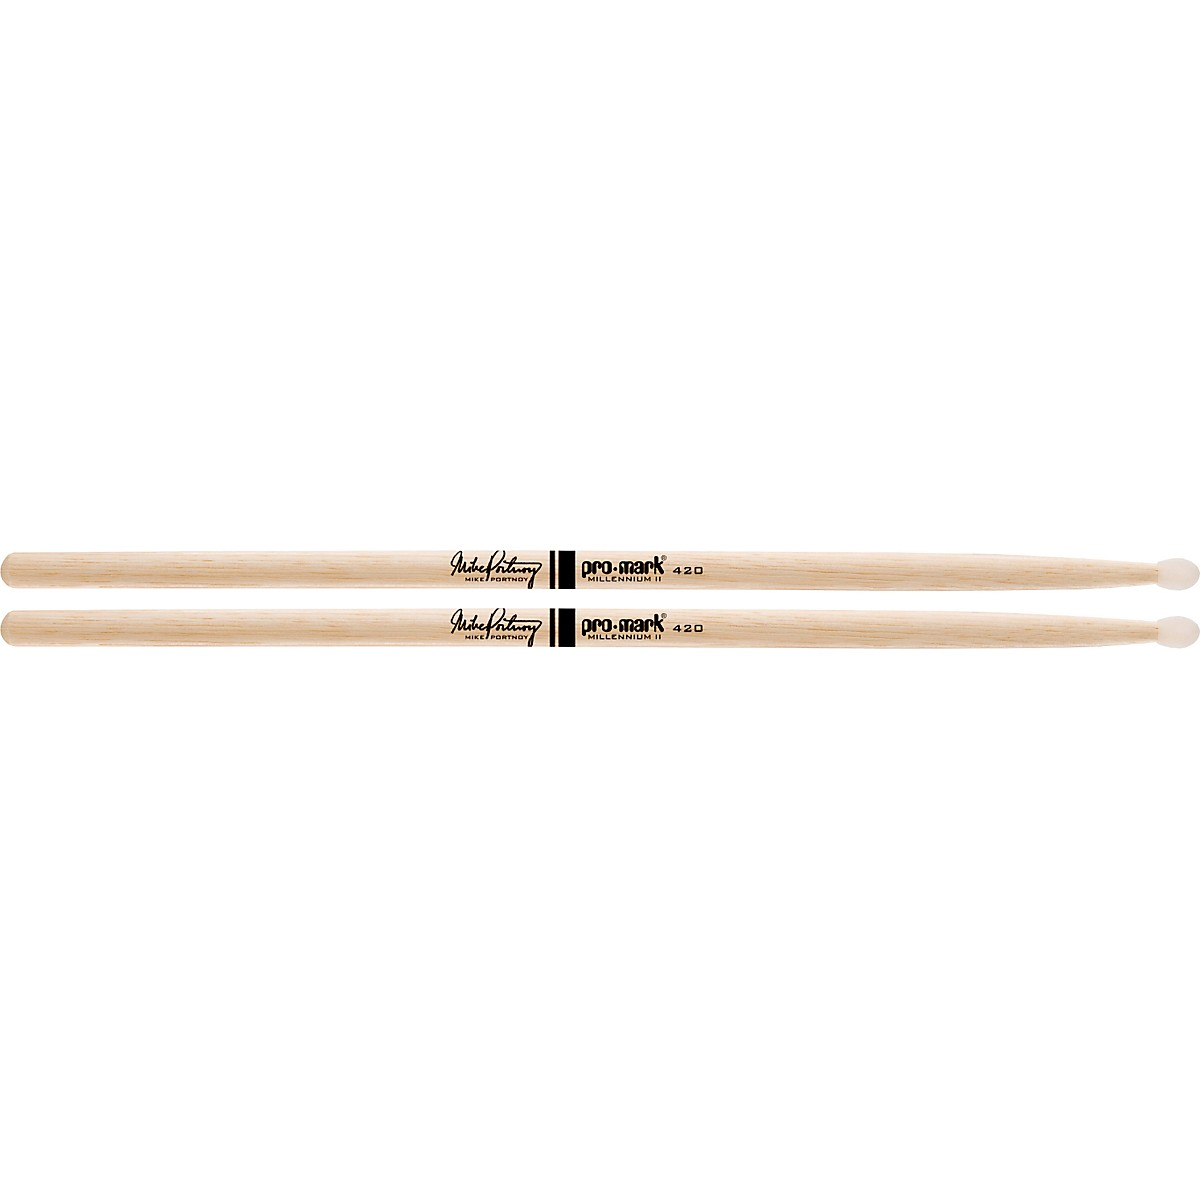 Promark Mike Portnoy Autograph Series Drumsticks